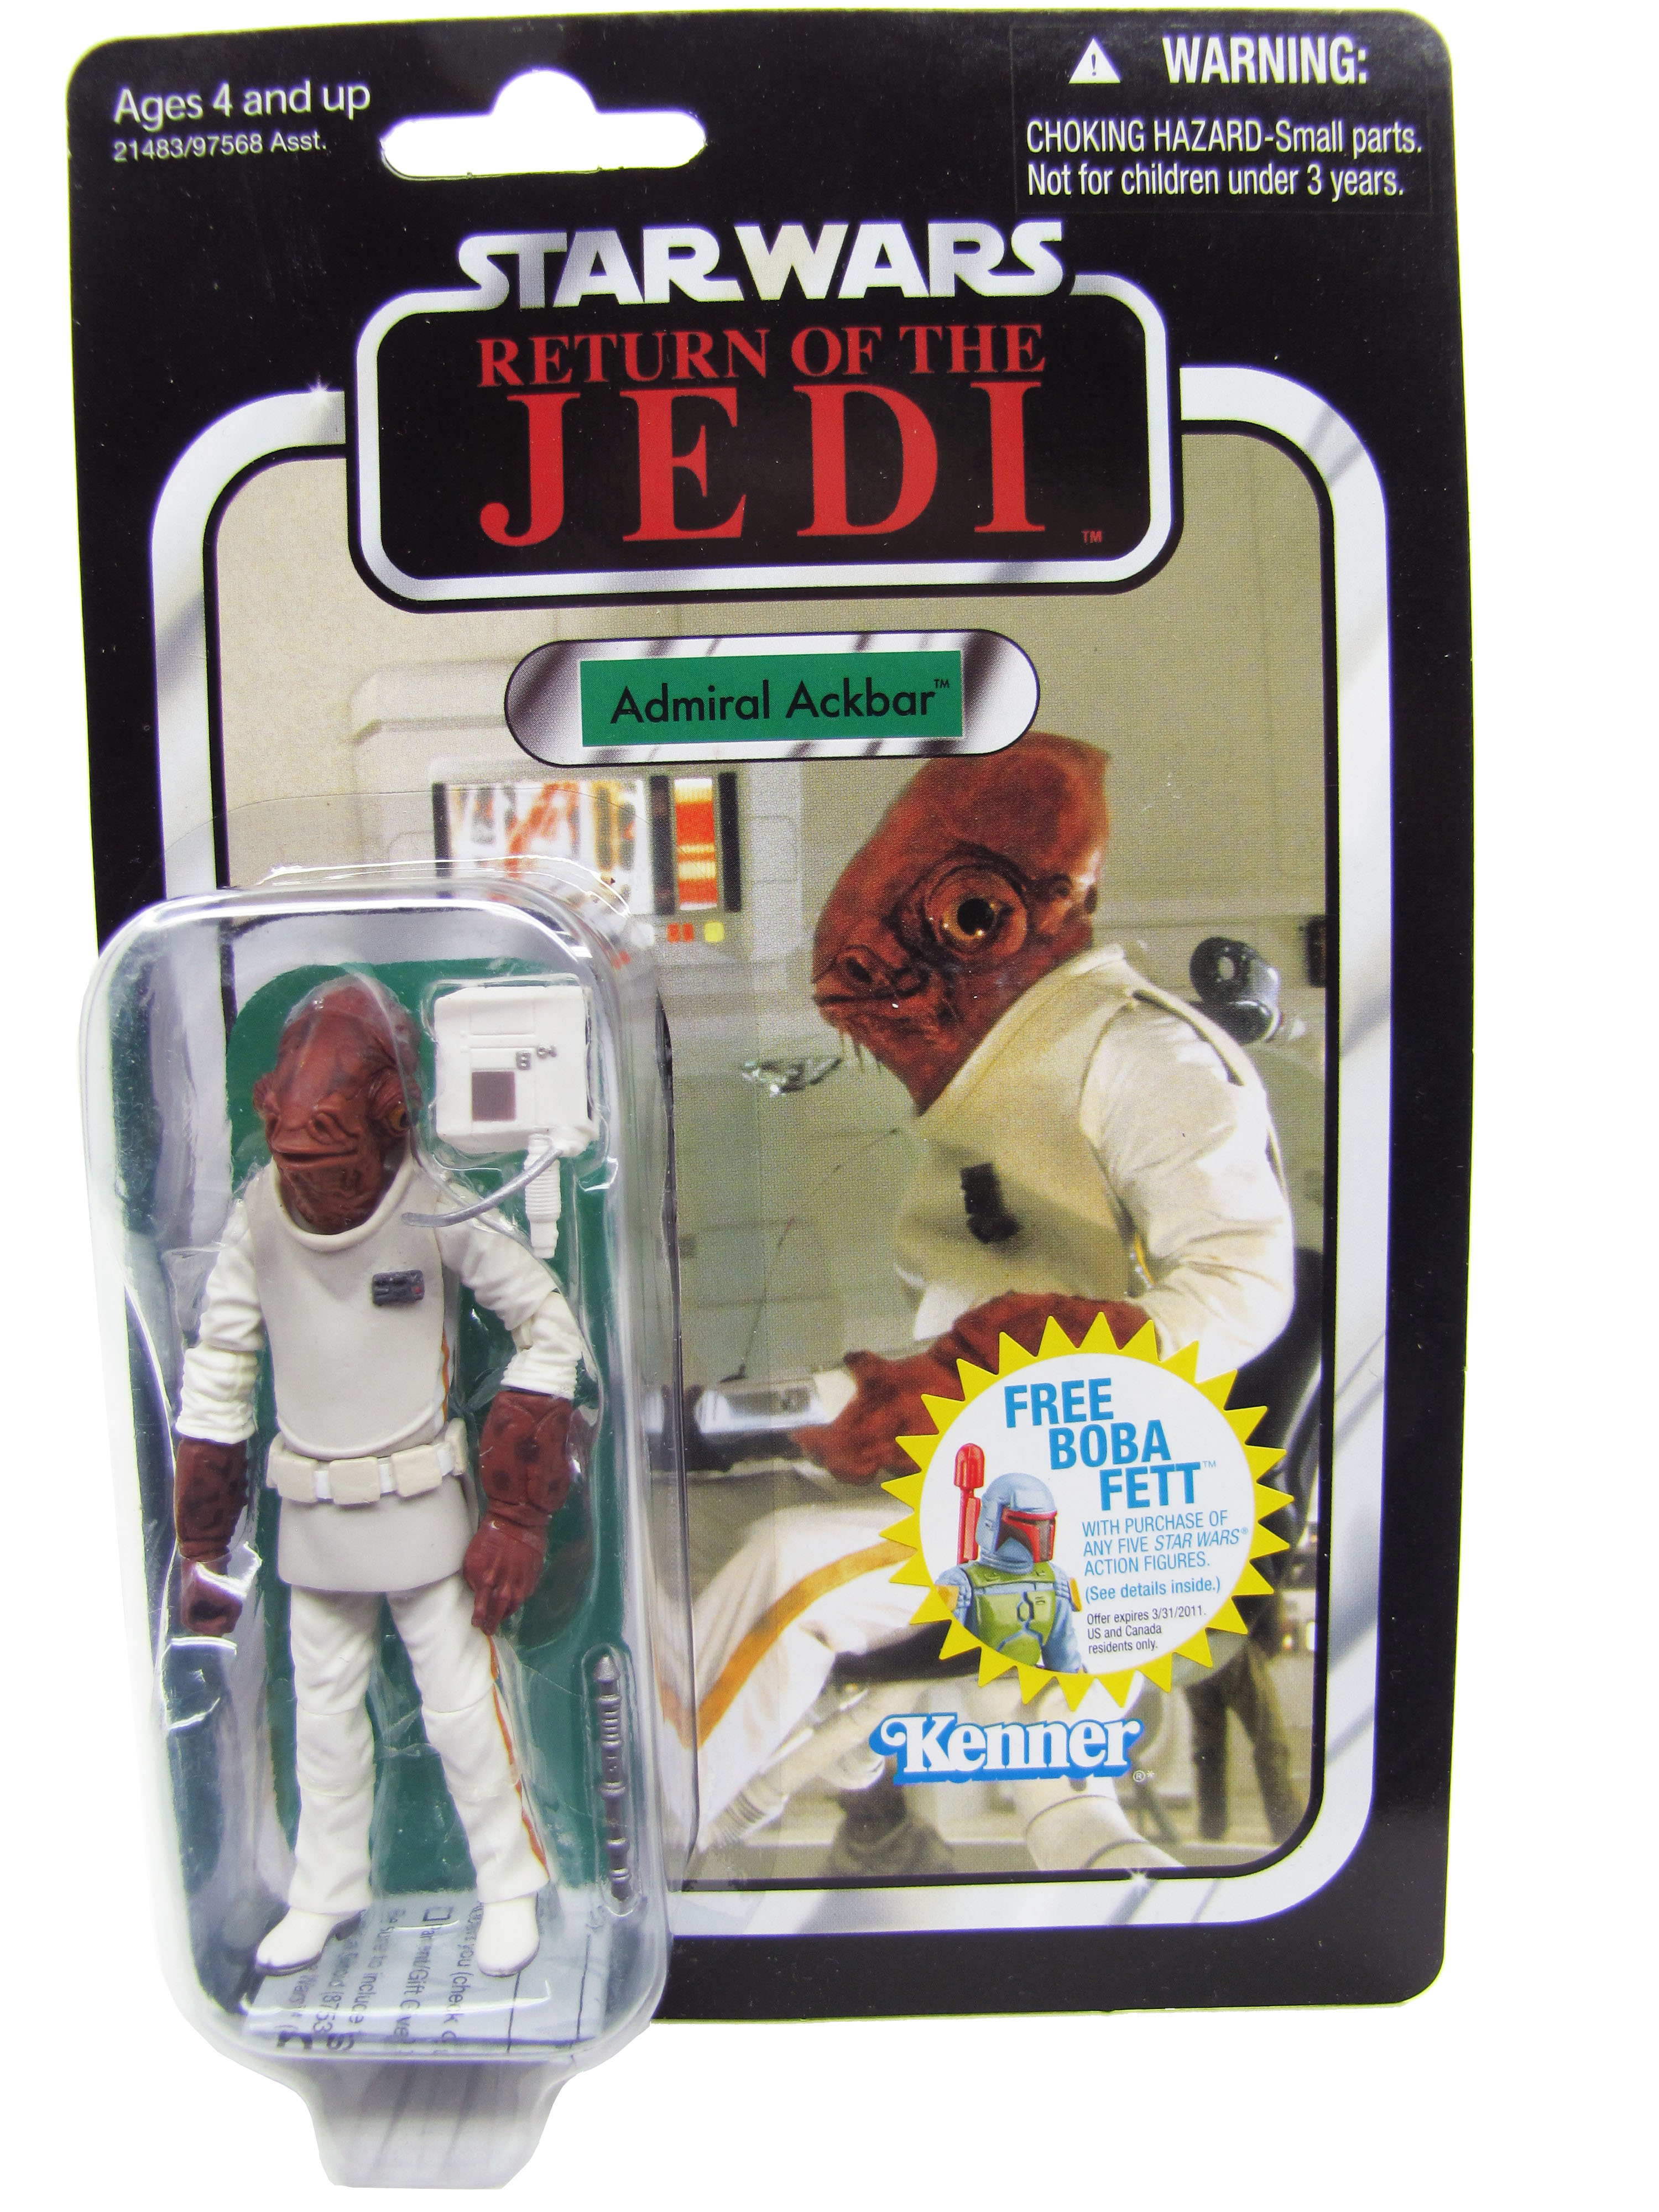 2010 Star Wars Vintage Collection ROTJ ADMIRAL ACKBAR MOC